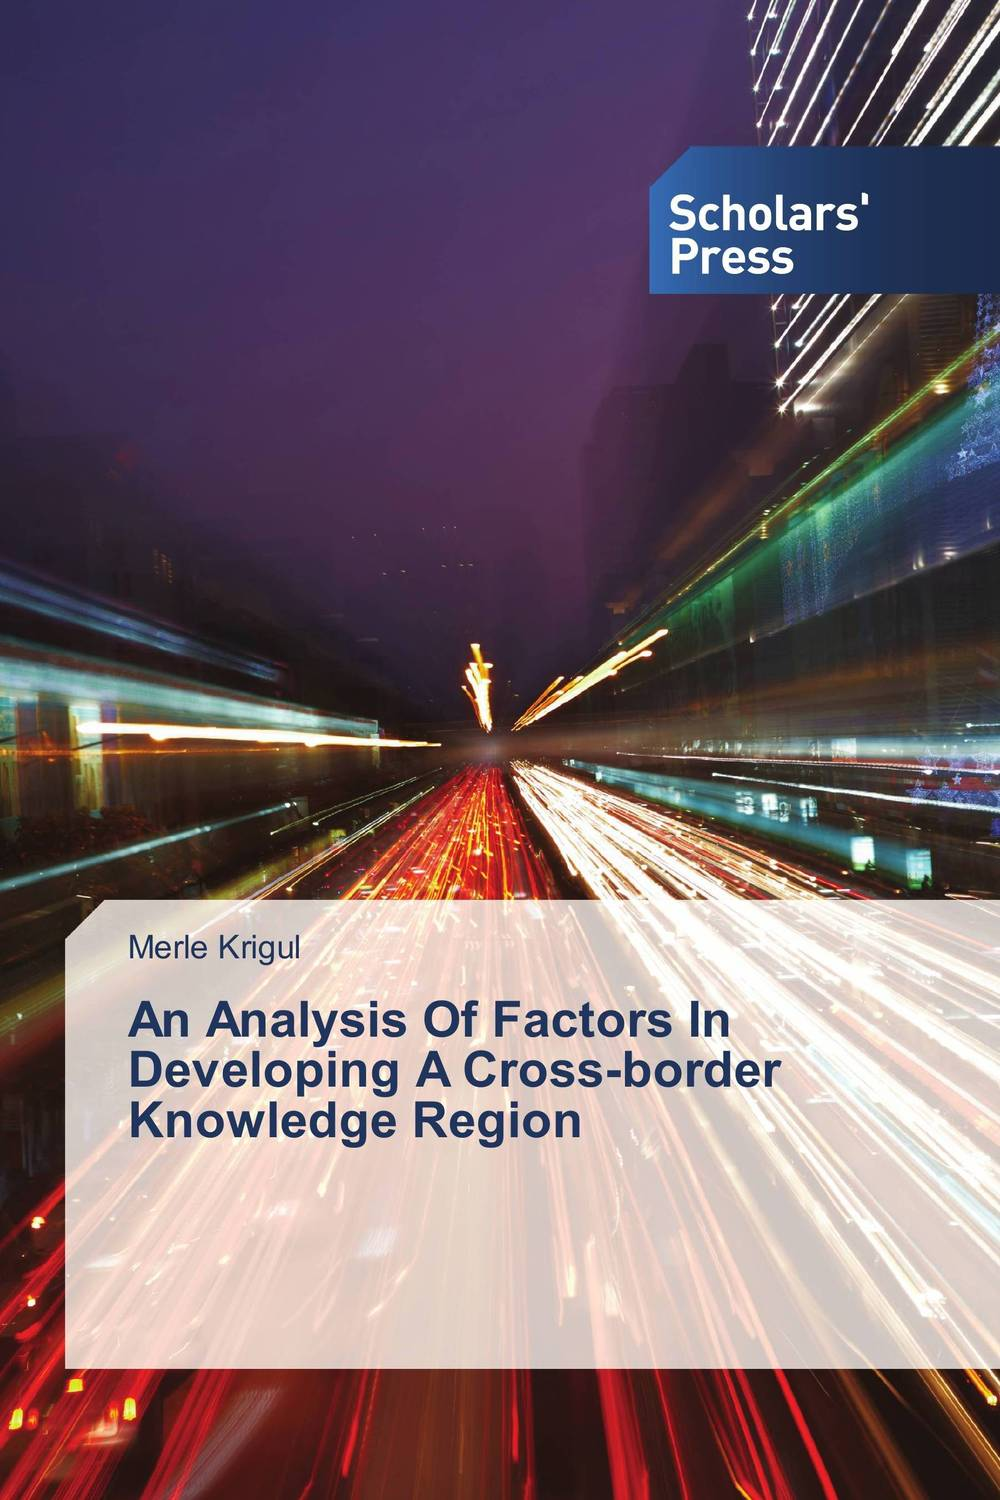 An Analysis Of Factors In Developing A Cross-border Knowledge Region laurens j van mourik the process of cross border entrepreneurship